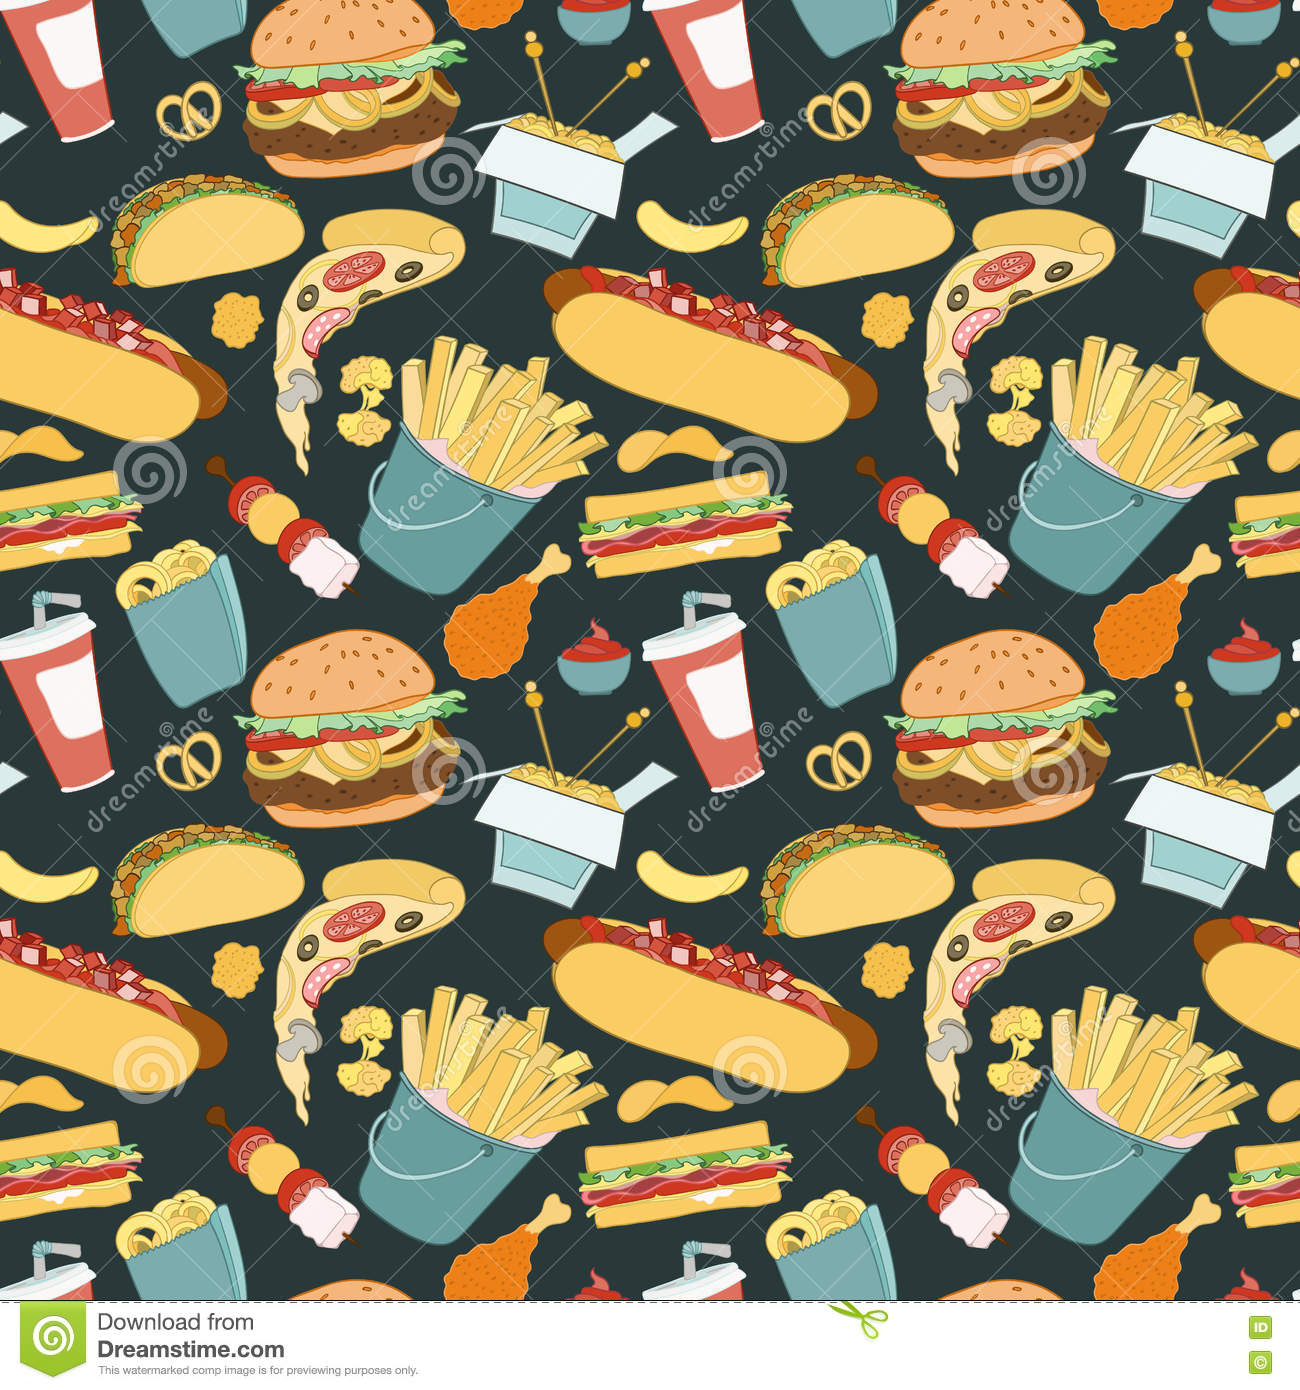 hand drawn vector seamless fast food pattern stock vectorhand drawn vector seamless fast food pattern sketch doodle food elements can be used for wallpaper, website background, wrapping paper invitation, flyer,